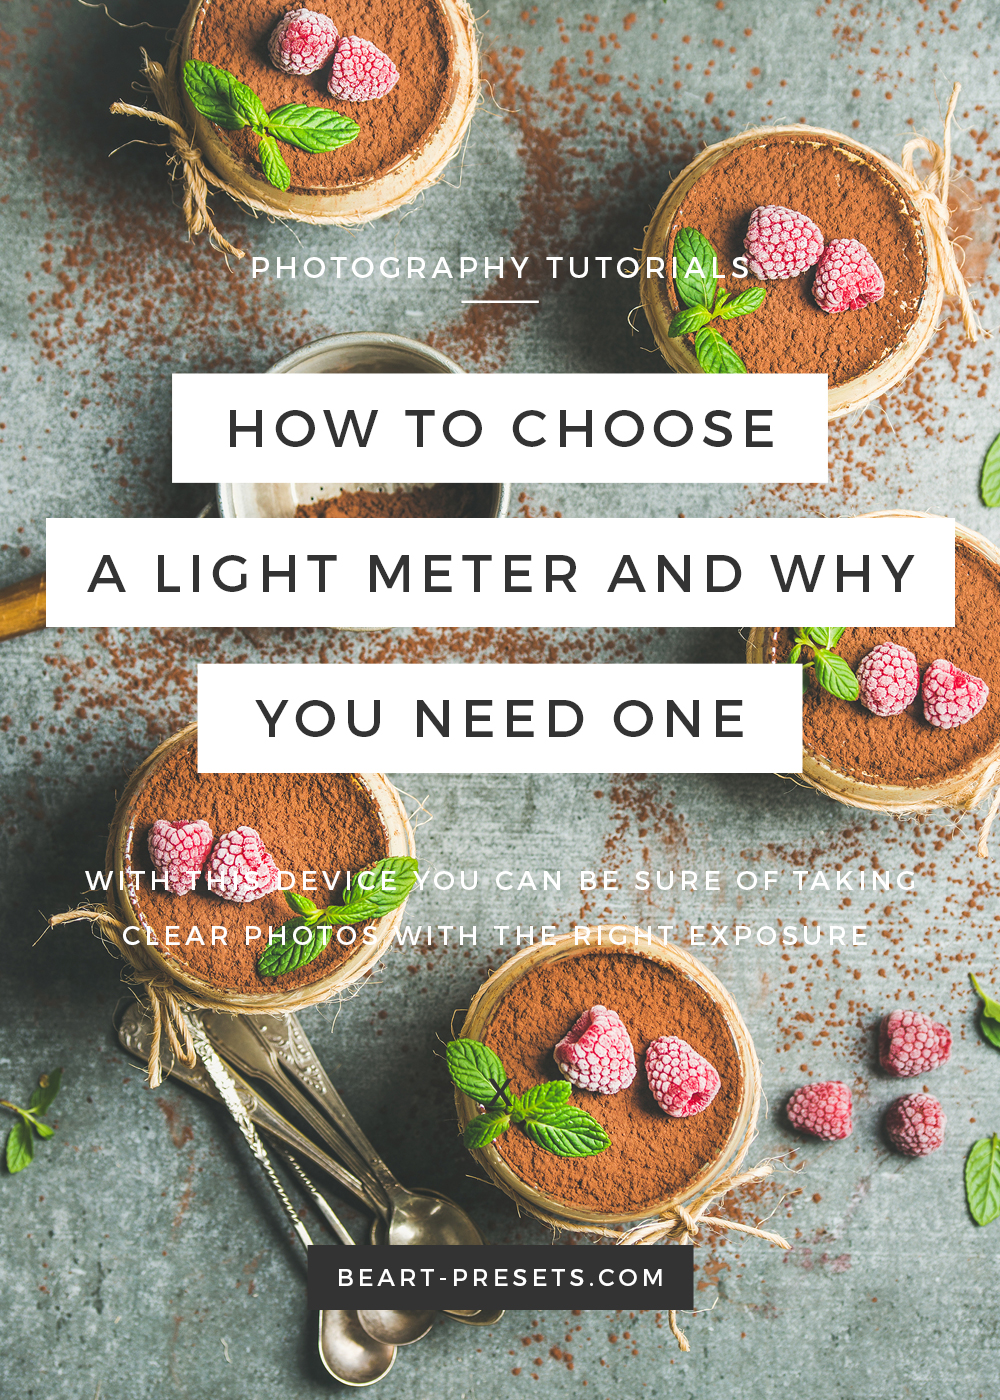 HOW TO CHOOSE A LIGHT METER AND WHY YOU NEED ONE